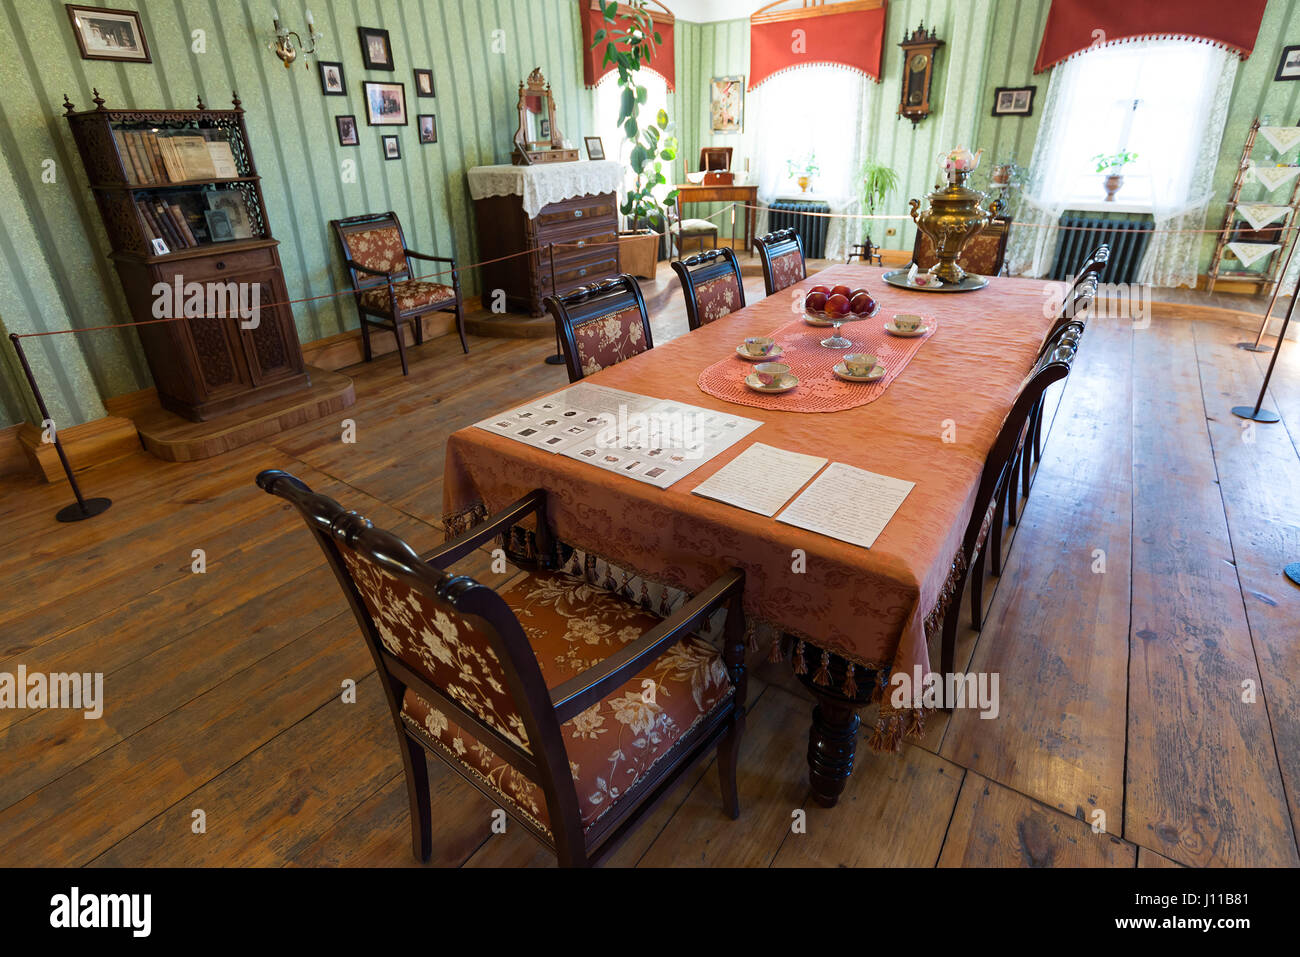 Suzdal, Russia - November 06, 2015. Museum Wooden Architecture, Interior merchants house - Stock Image